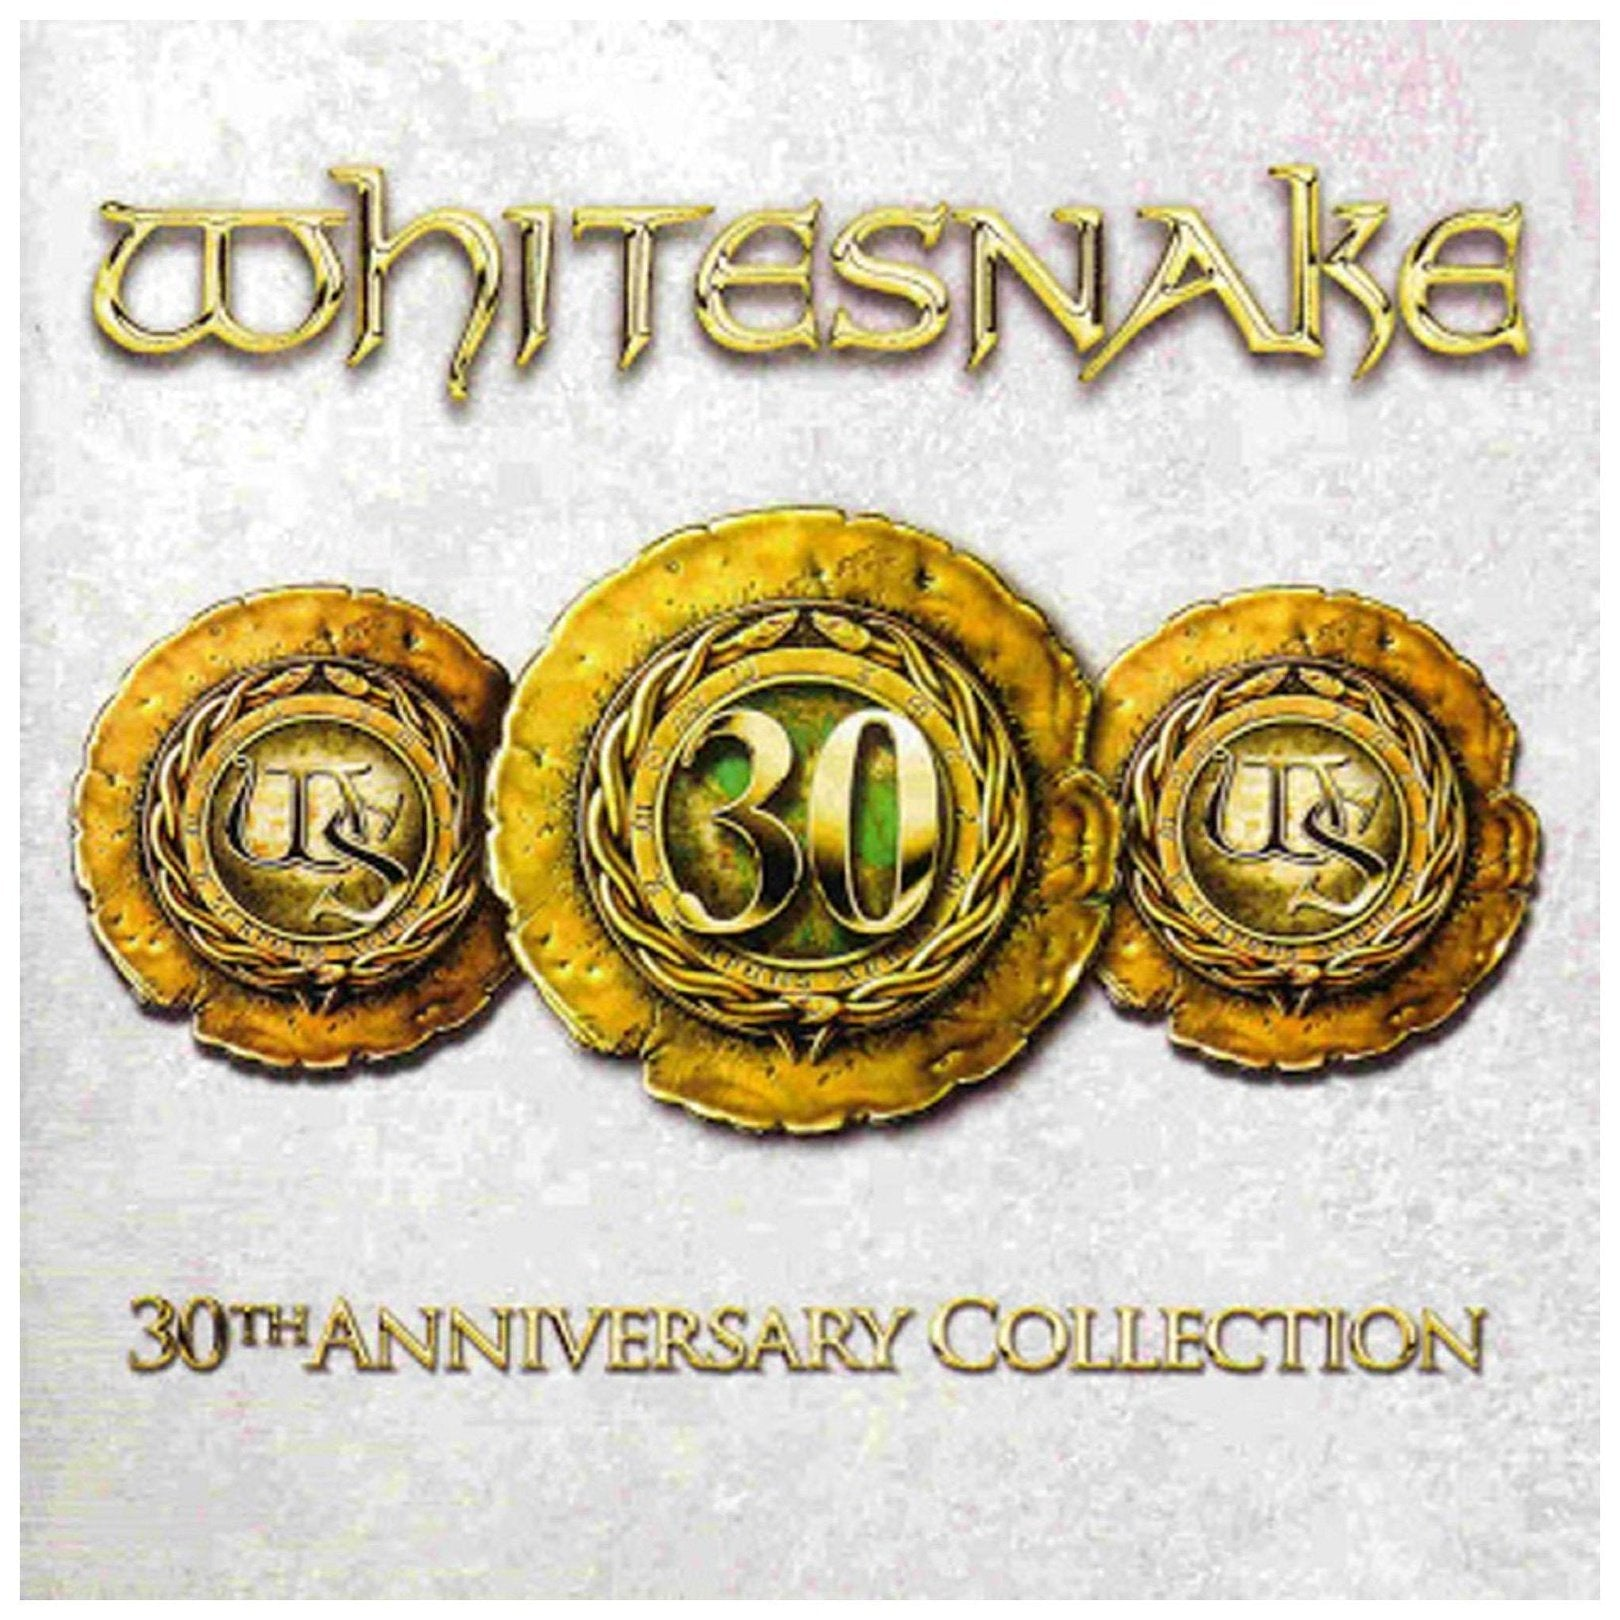 Whitesnake - Whitesnake - 30th Anniversary Collection - 3 Cd Box Set